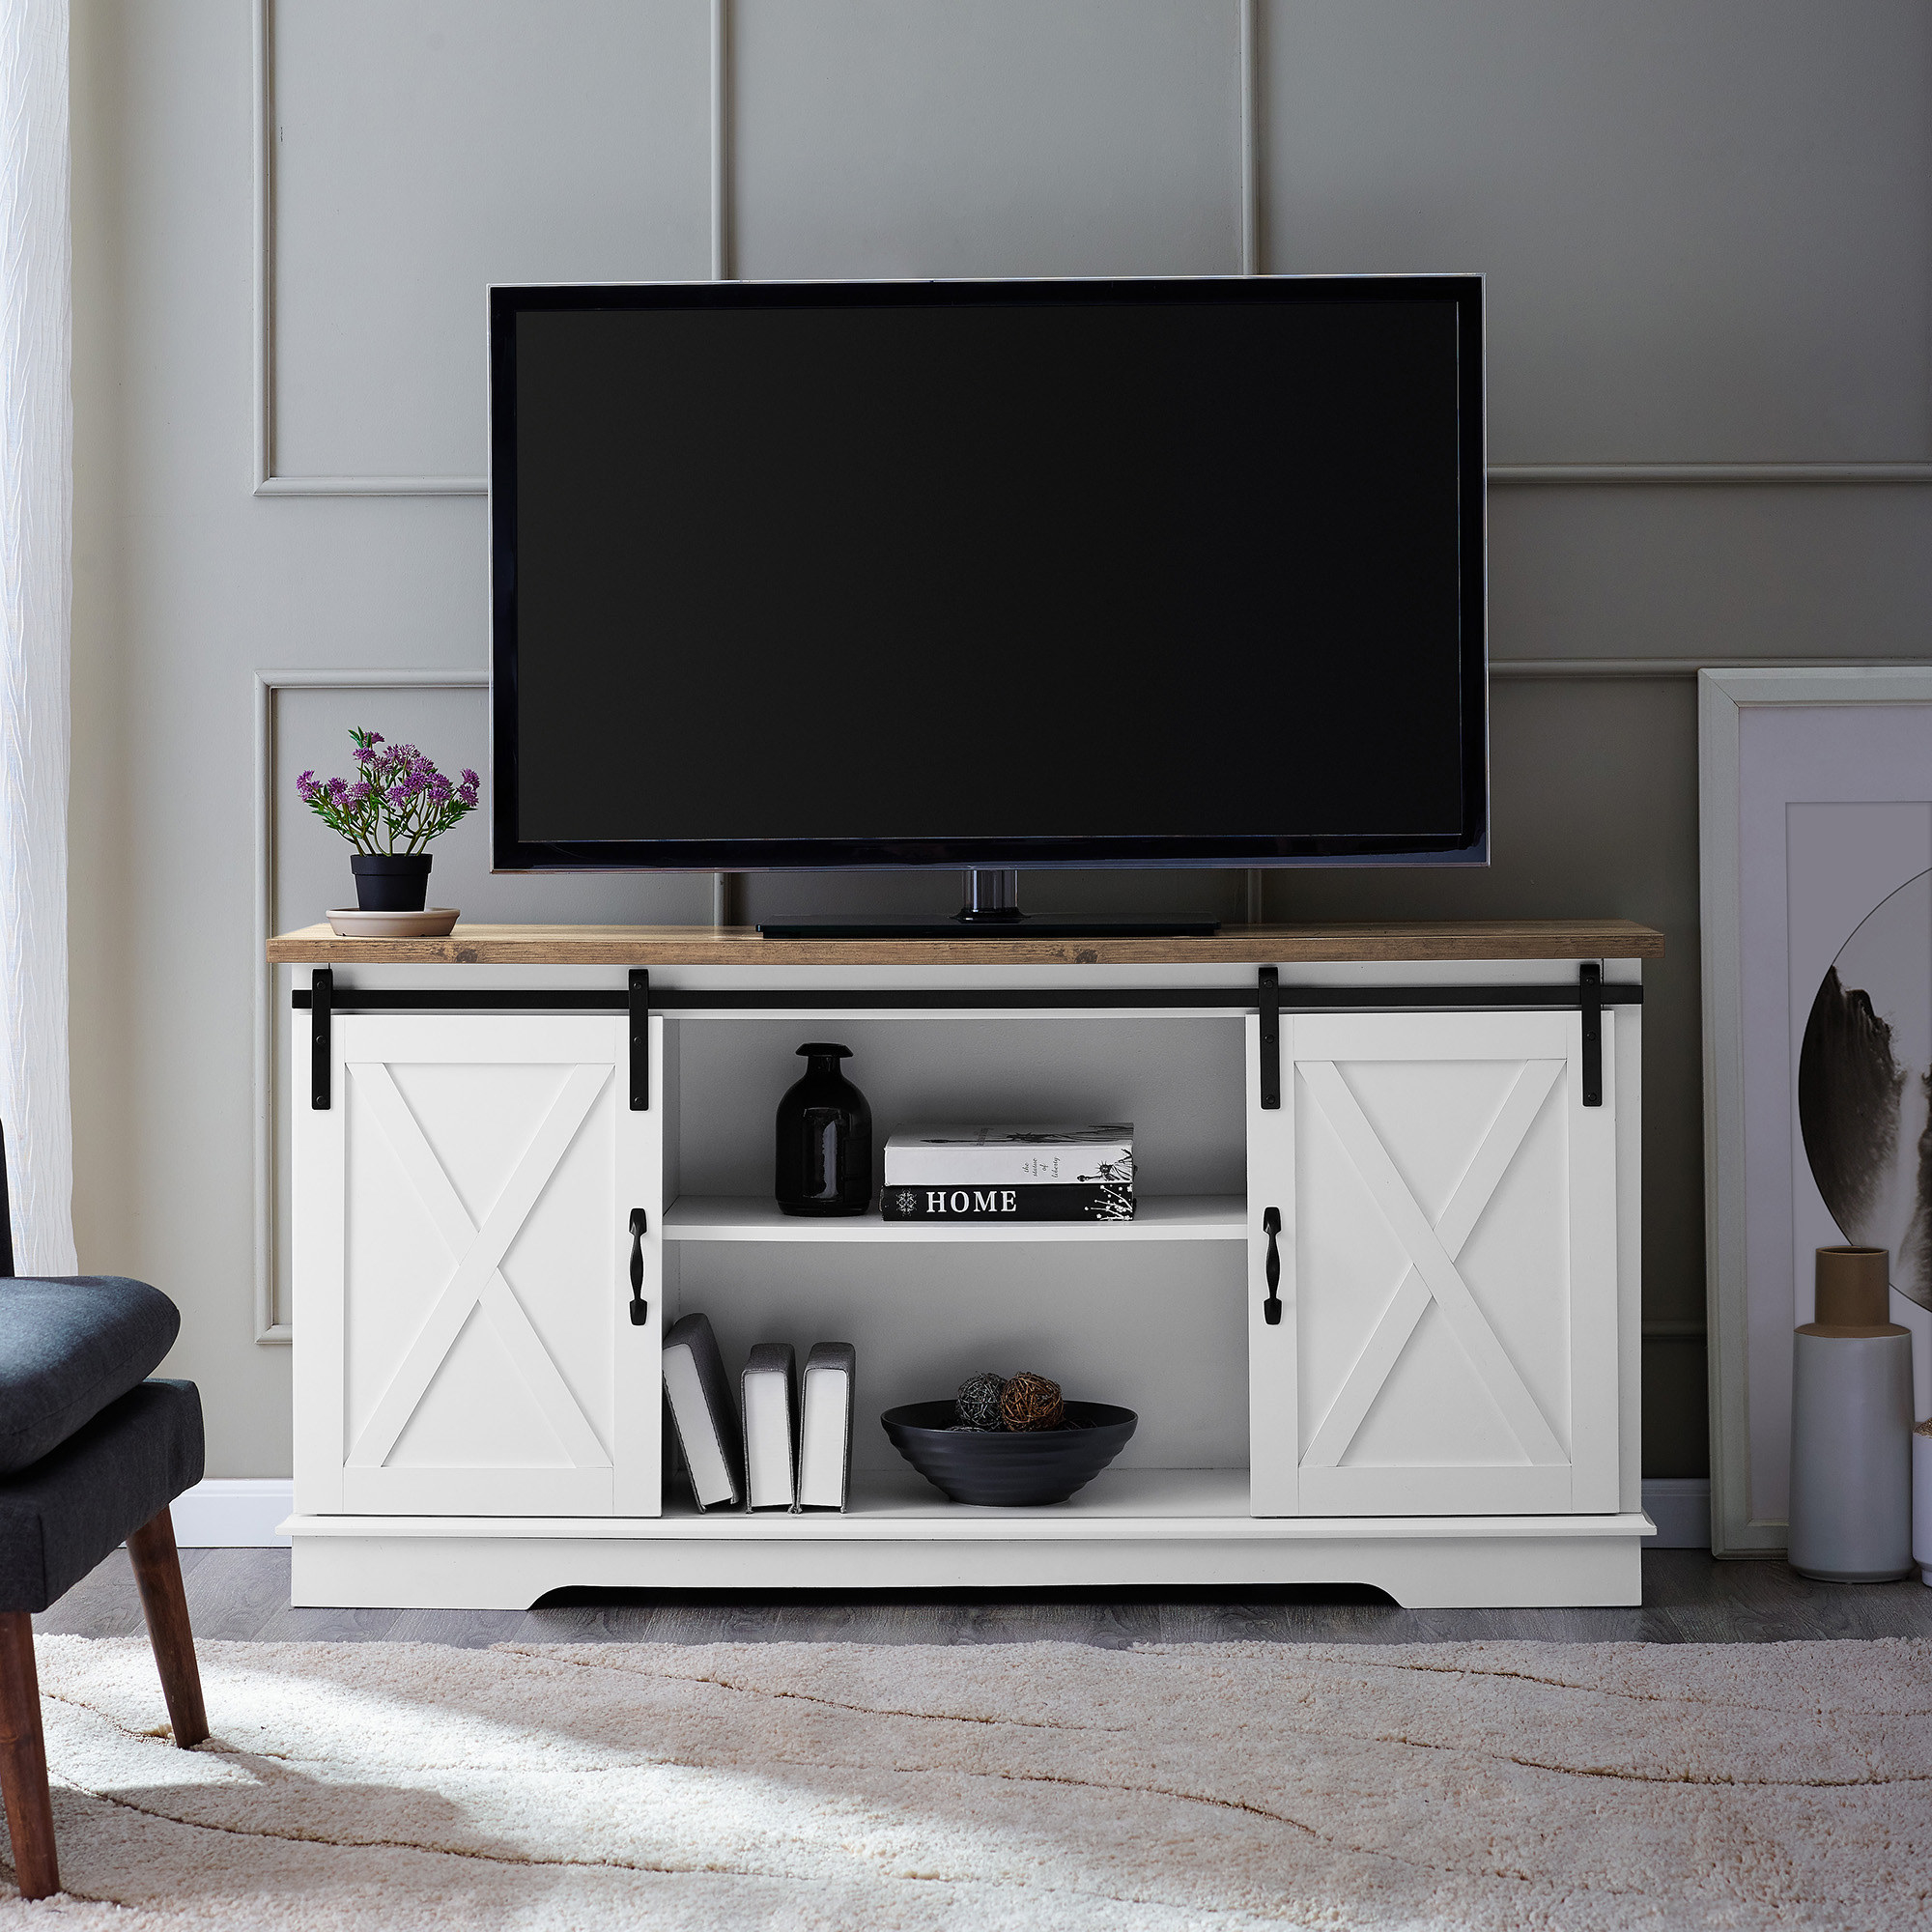 The white TV stand